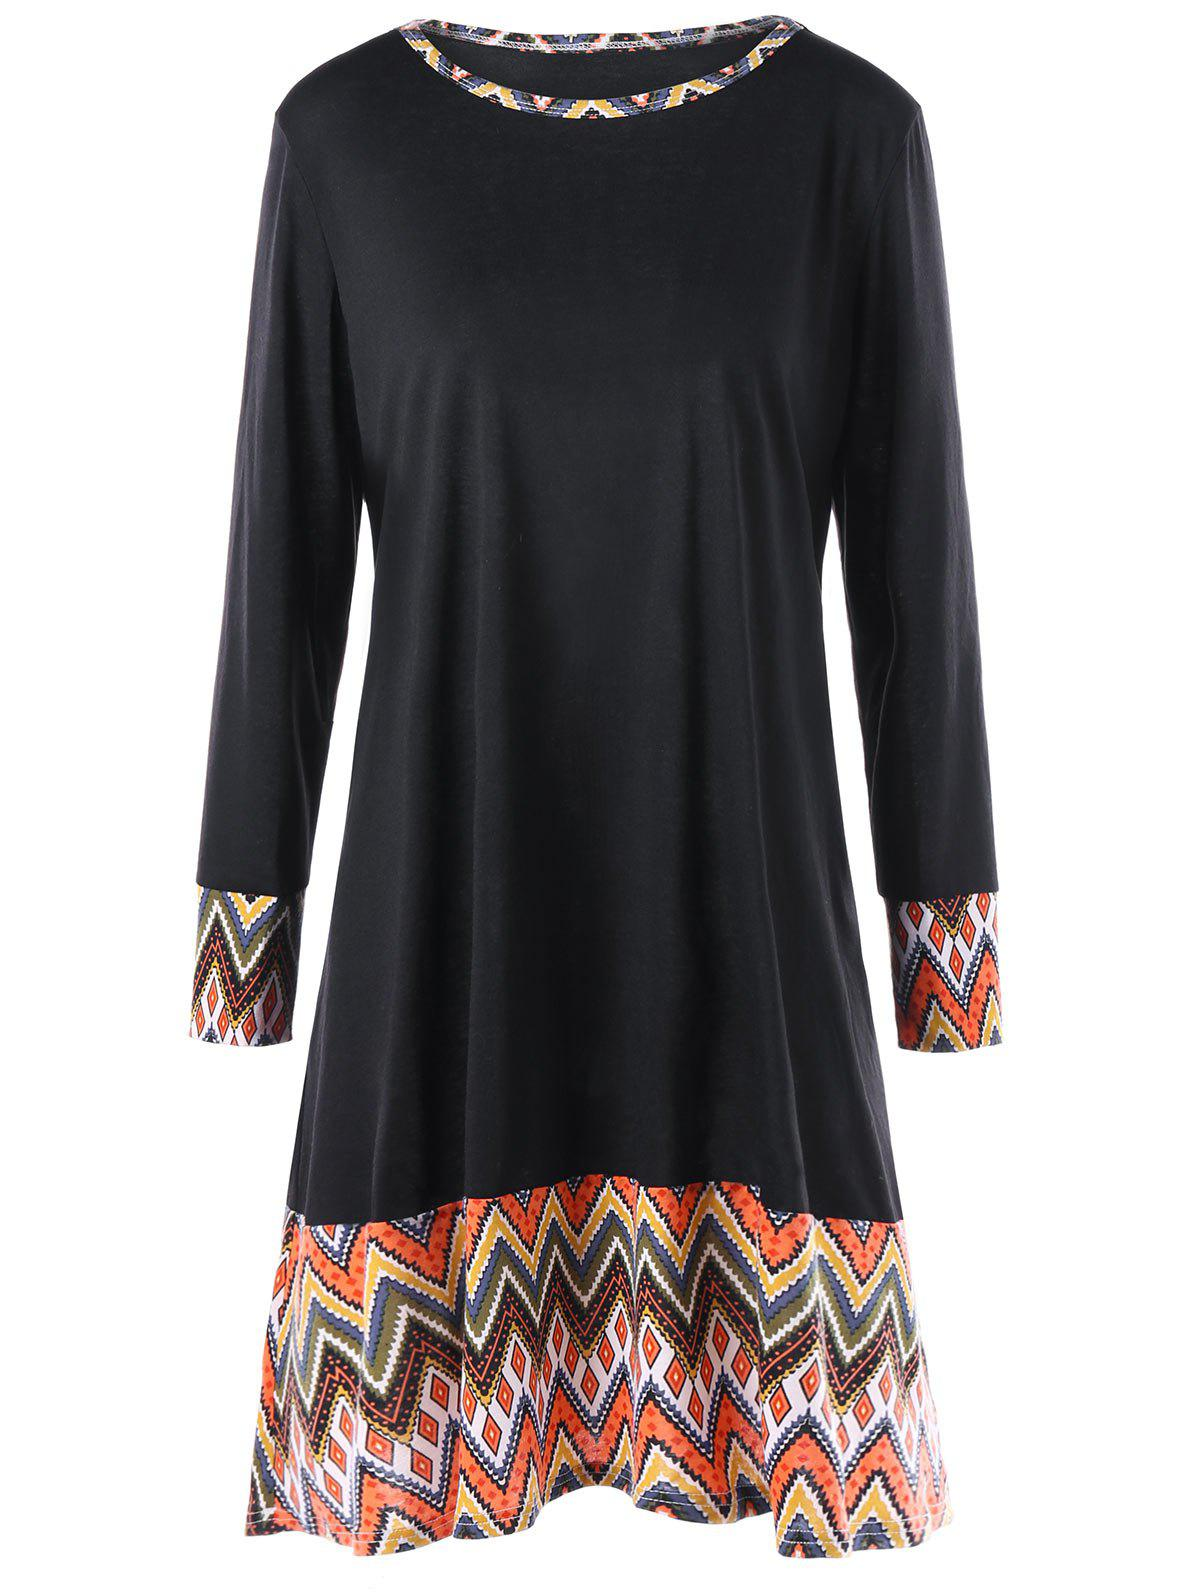 Bohemian Chevron Print Panel Plus Size DressWOMEN<br><br>Size: 5XL; Color: BLACK; Style: Bohemian; Material: Polyester,Spandex; Silhouette: A-Line; Dresses Length: Knee-Length; Neckline: Round Collar; Sleeve Type: Cuff Sleeve; Sleeve Length: Long Sleeves; Waist: Dropped; Embellishment: Panel; Pattern Type: Chevron/Zig Zag; Elasticity: Micro-elastic; With Belt: No; Season: Fall,Spring,Winter; Weight: 0.3500kg; Package Contents: 1 x Dress;